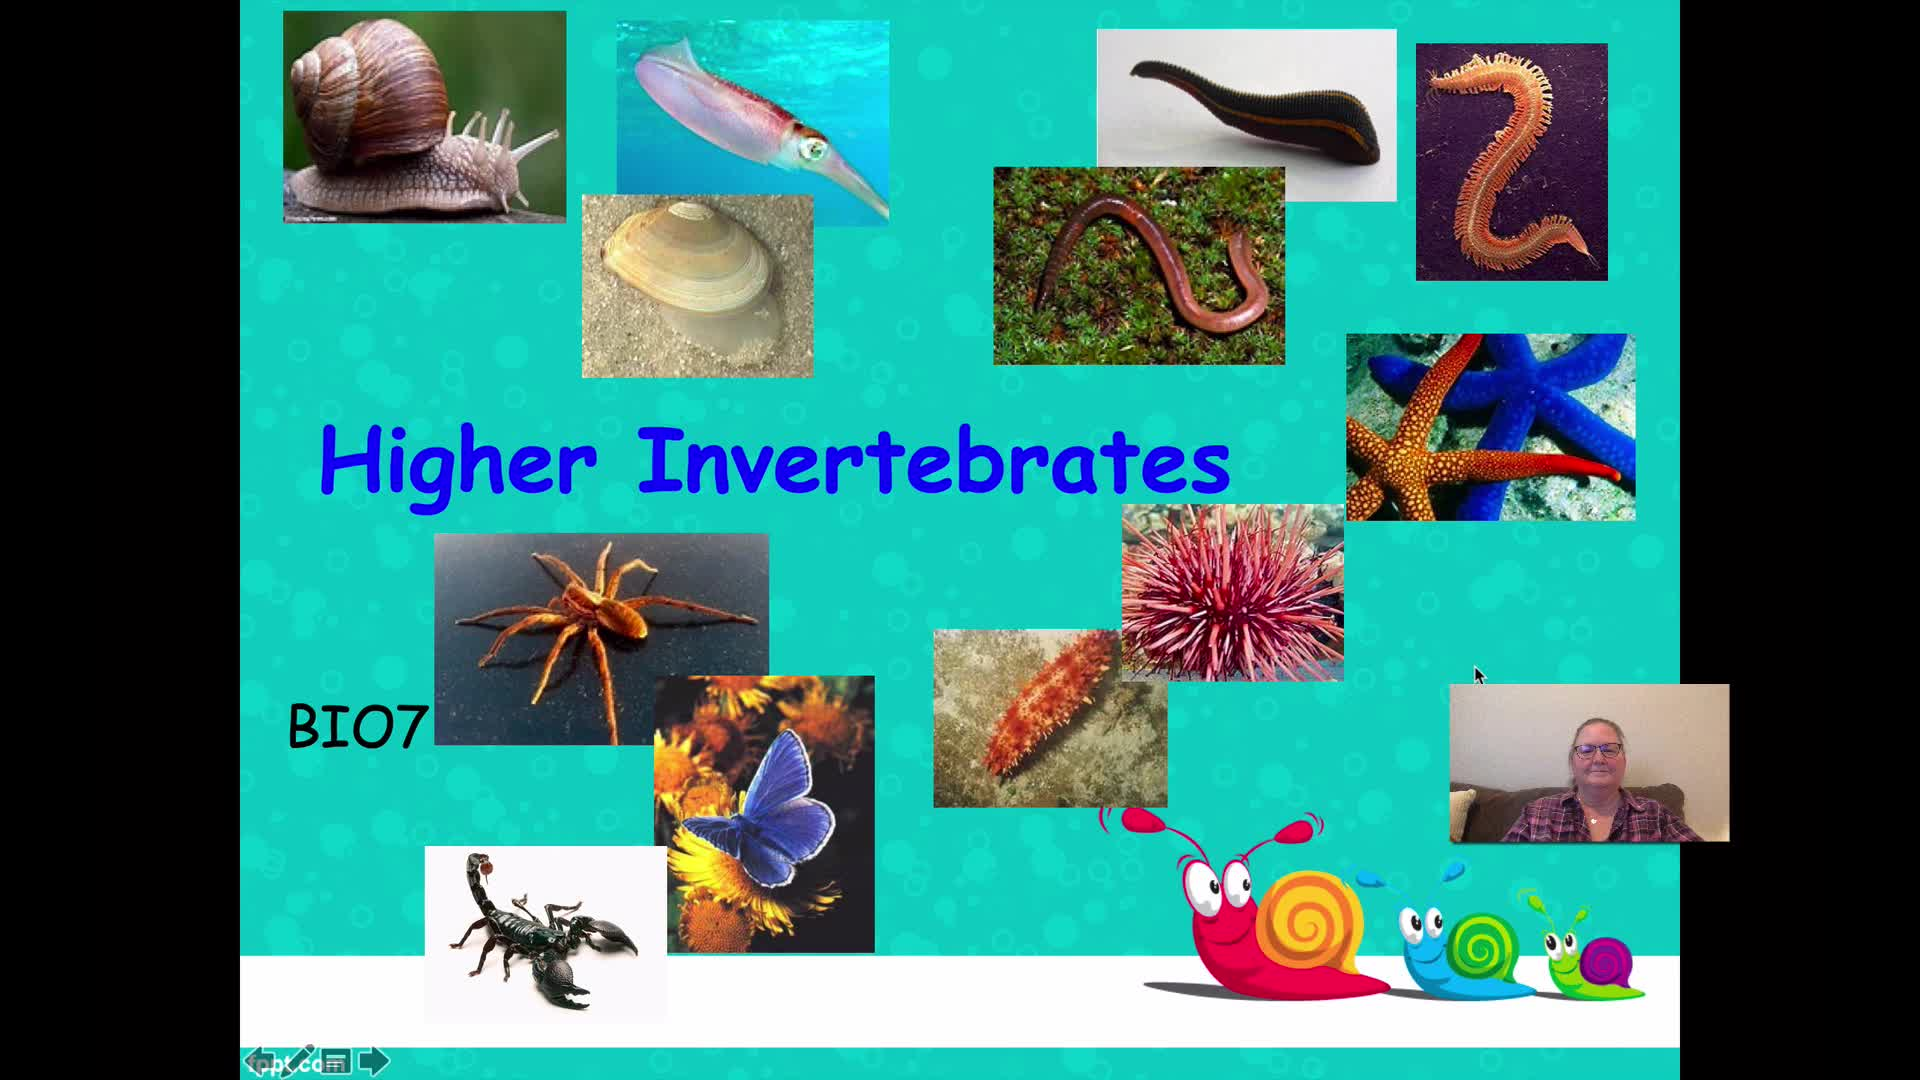 BIO7 - Higher Invertebrates - Part 1